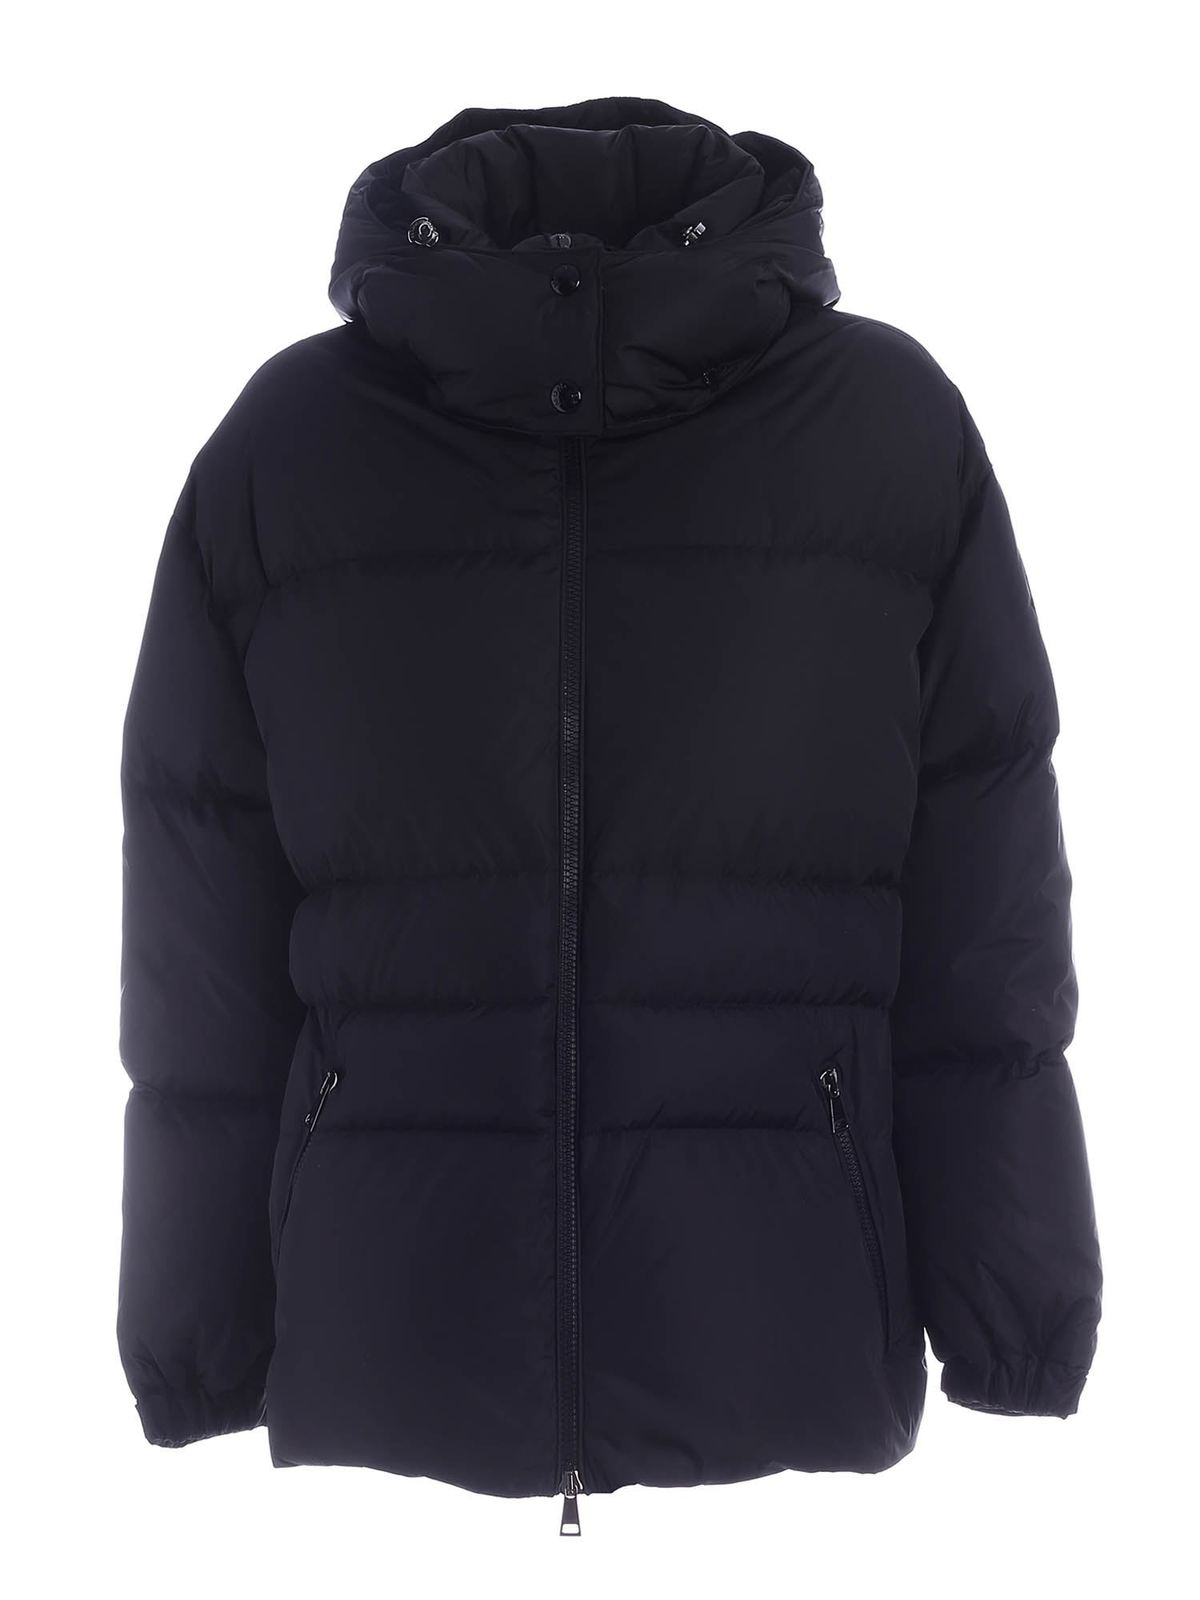 Moncler TIAC DOWN JACKET IN BLACK FEATURING HOOD